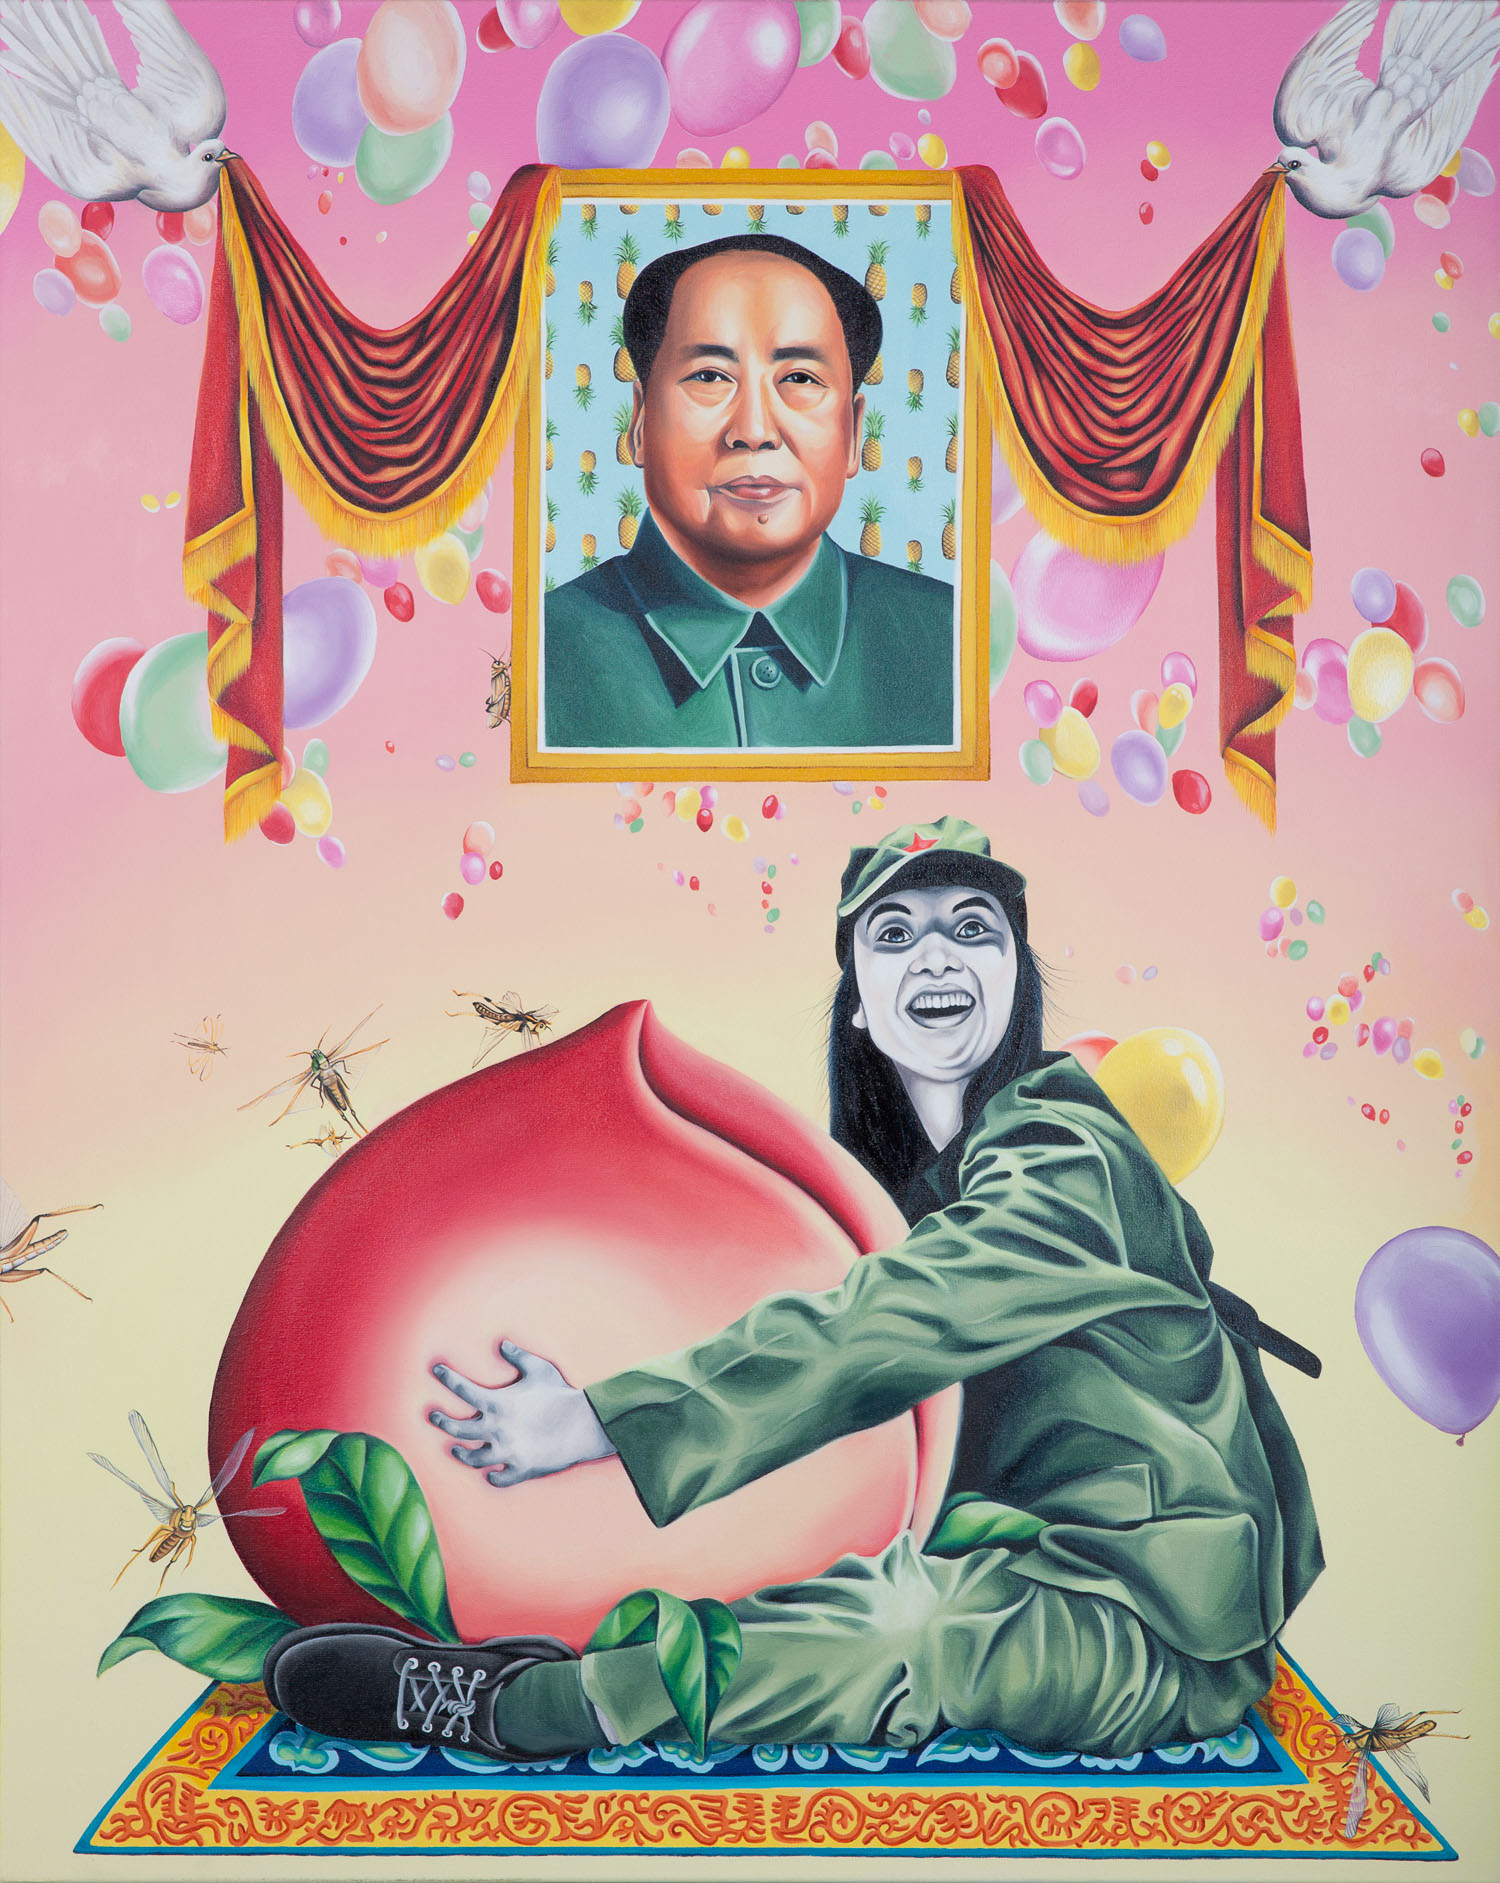 """Humbly Offering Chairman Mao 10,000 Years of Boundless Longevity 2015 Oil on canvas 60"" x 48"""